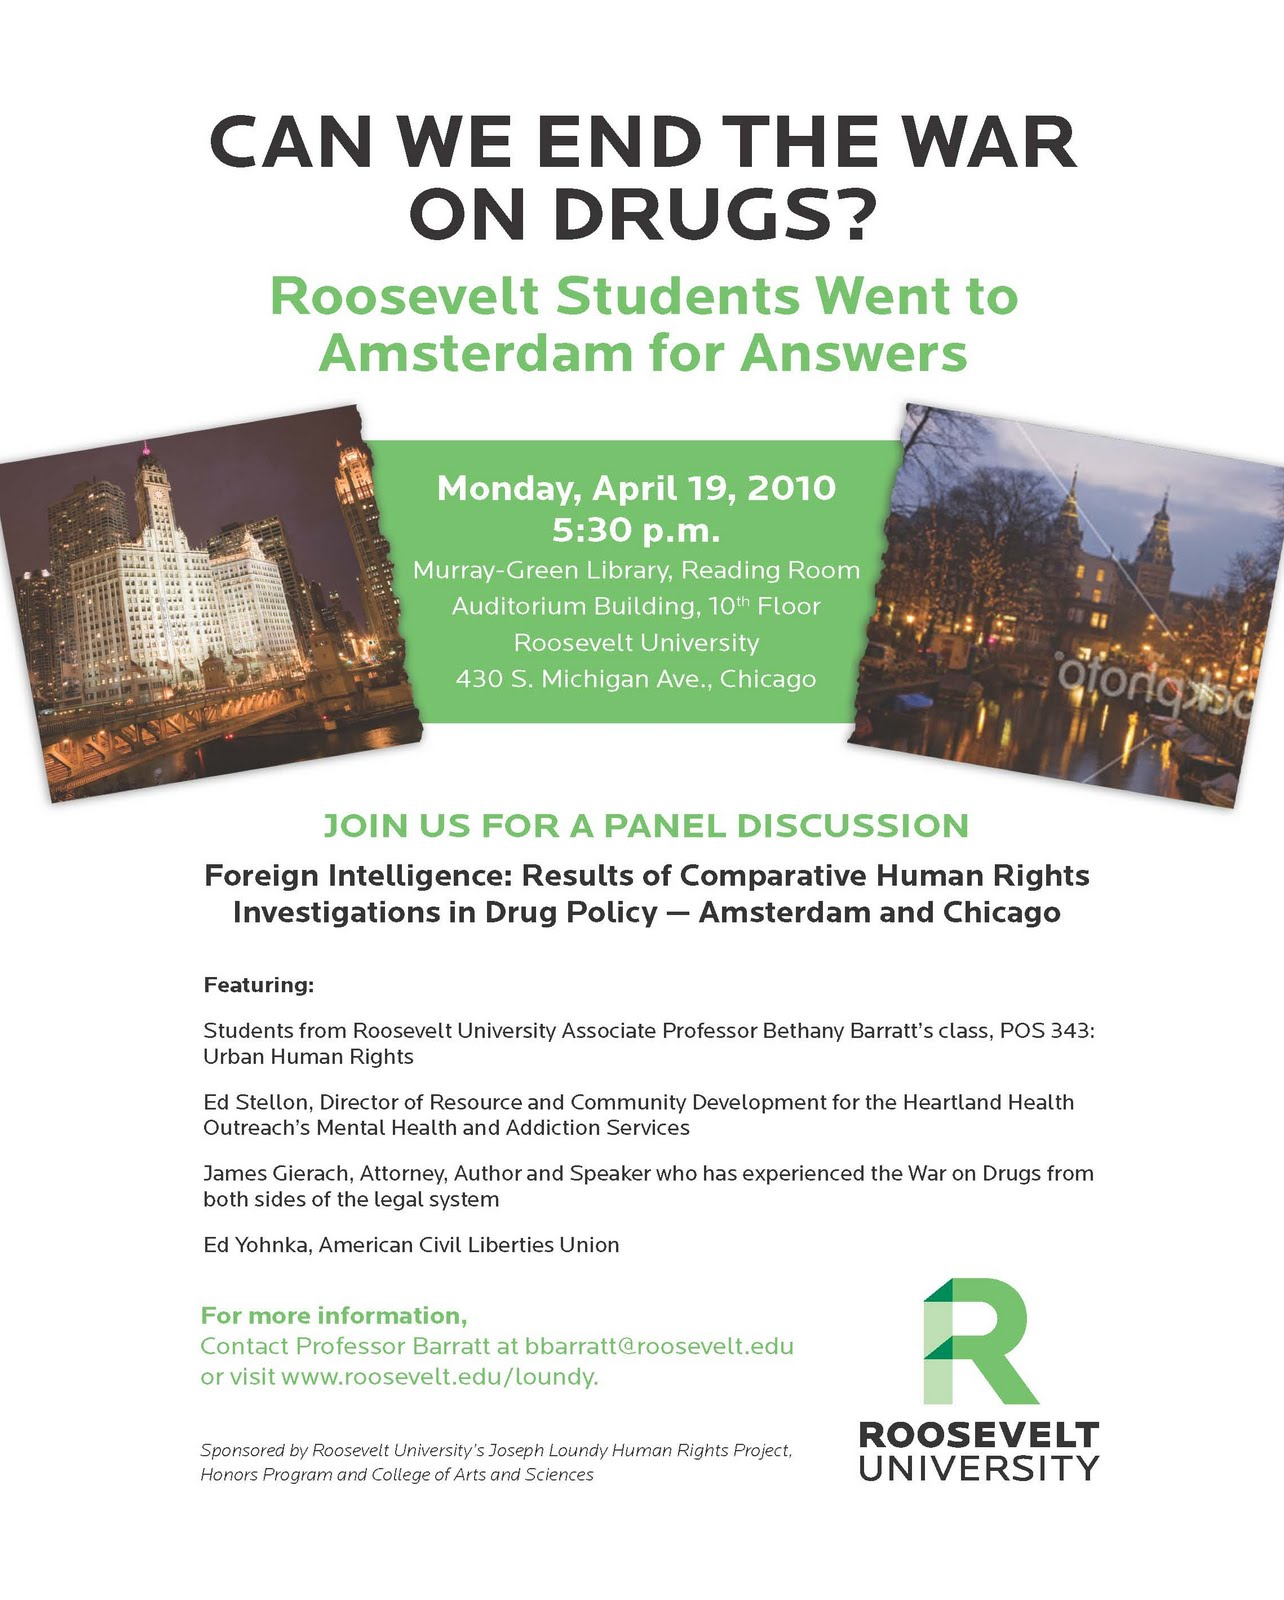 Roosevelt University Email >> Exploring Human Rights And Drug Policy In Amsterdam And